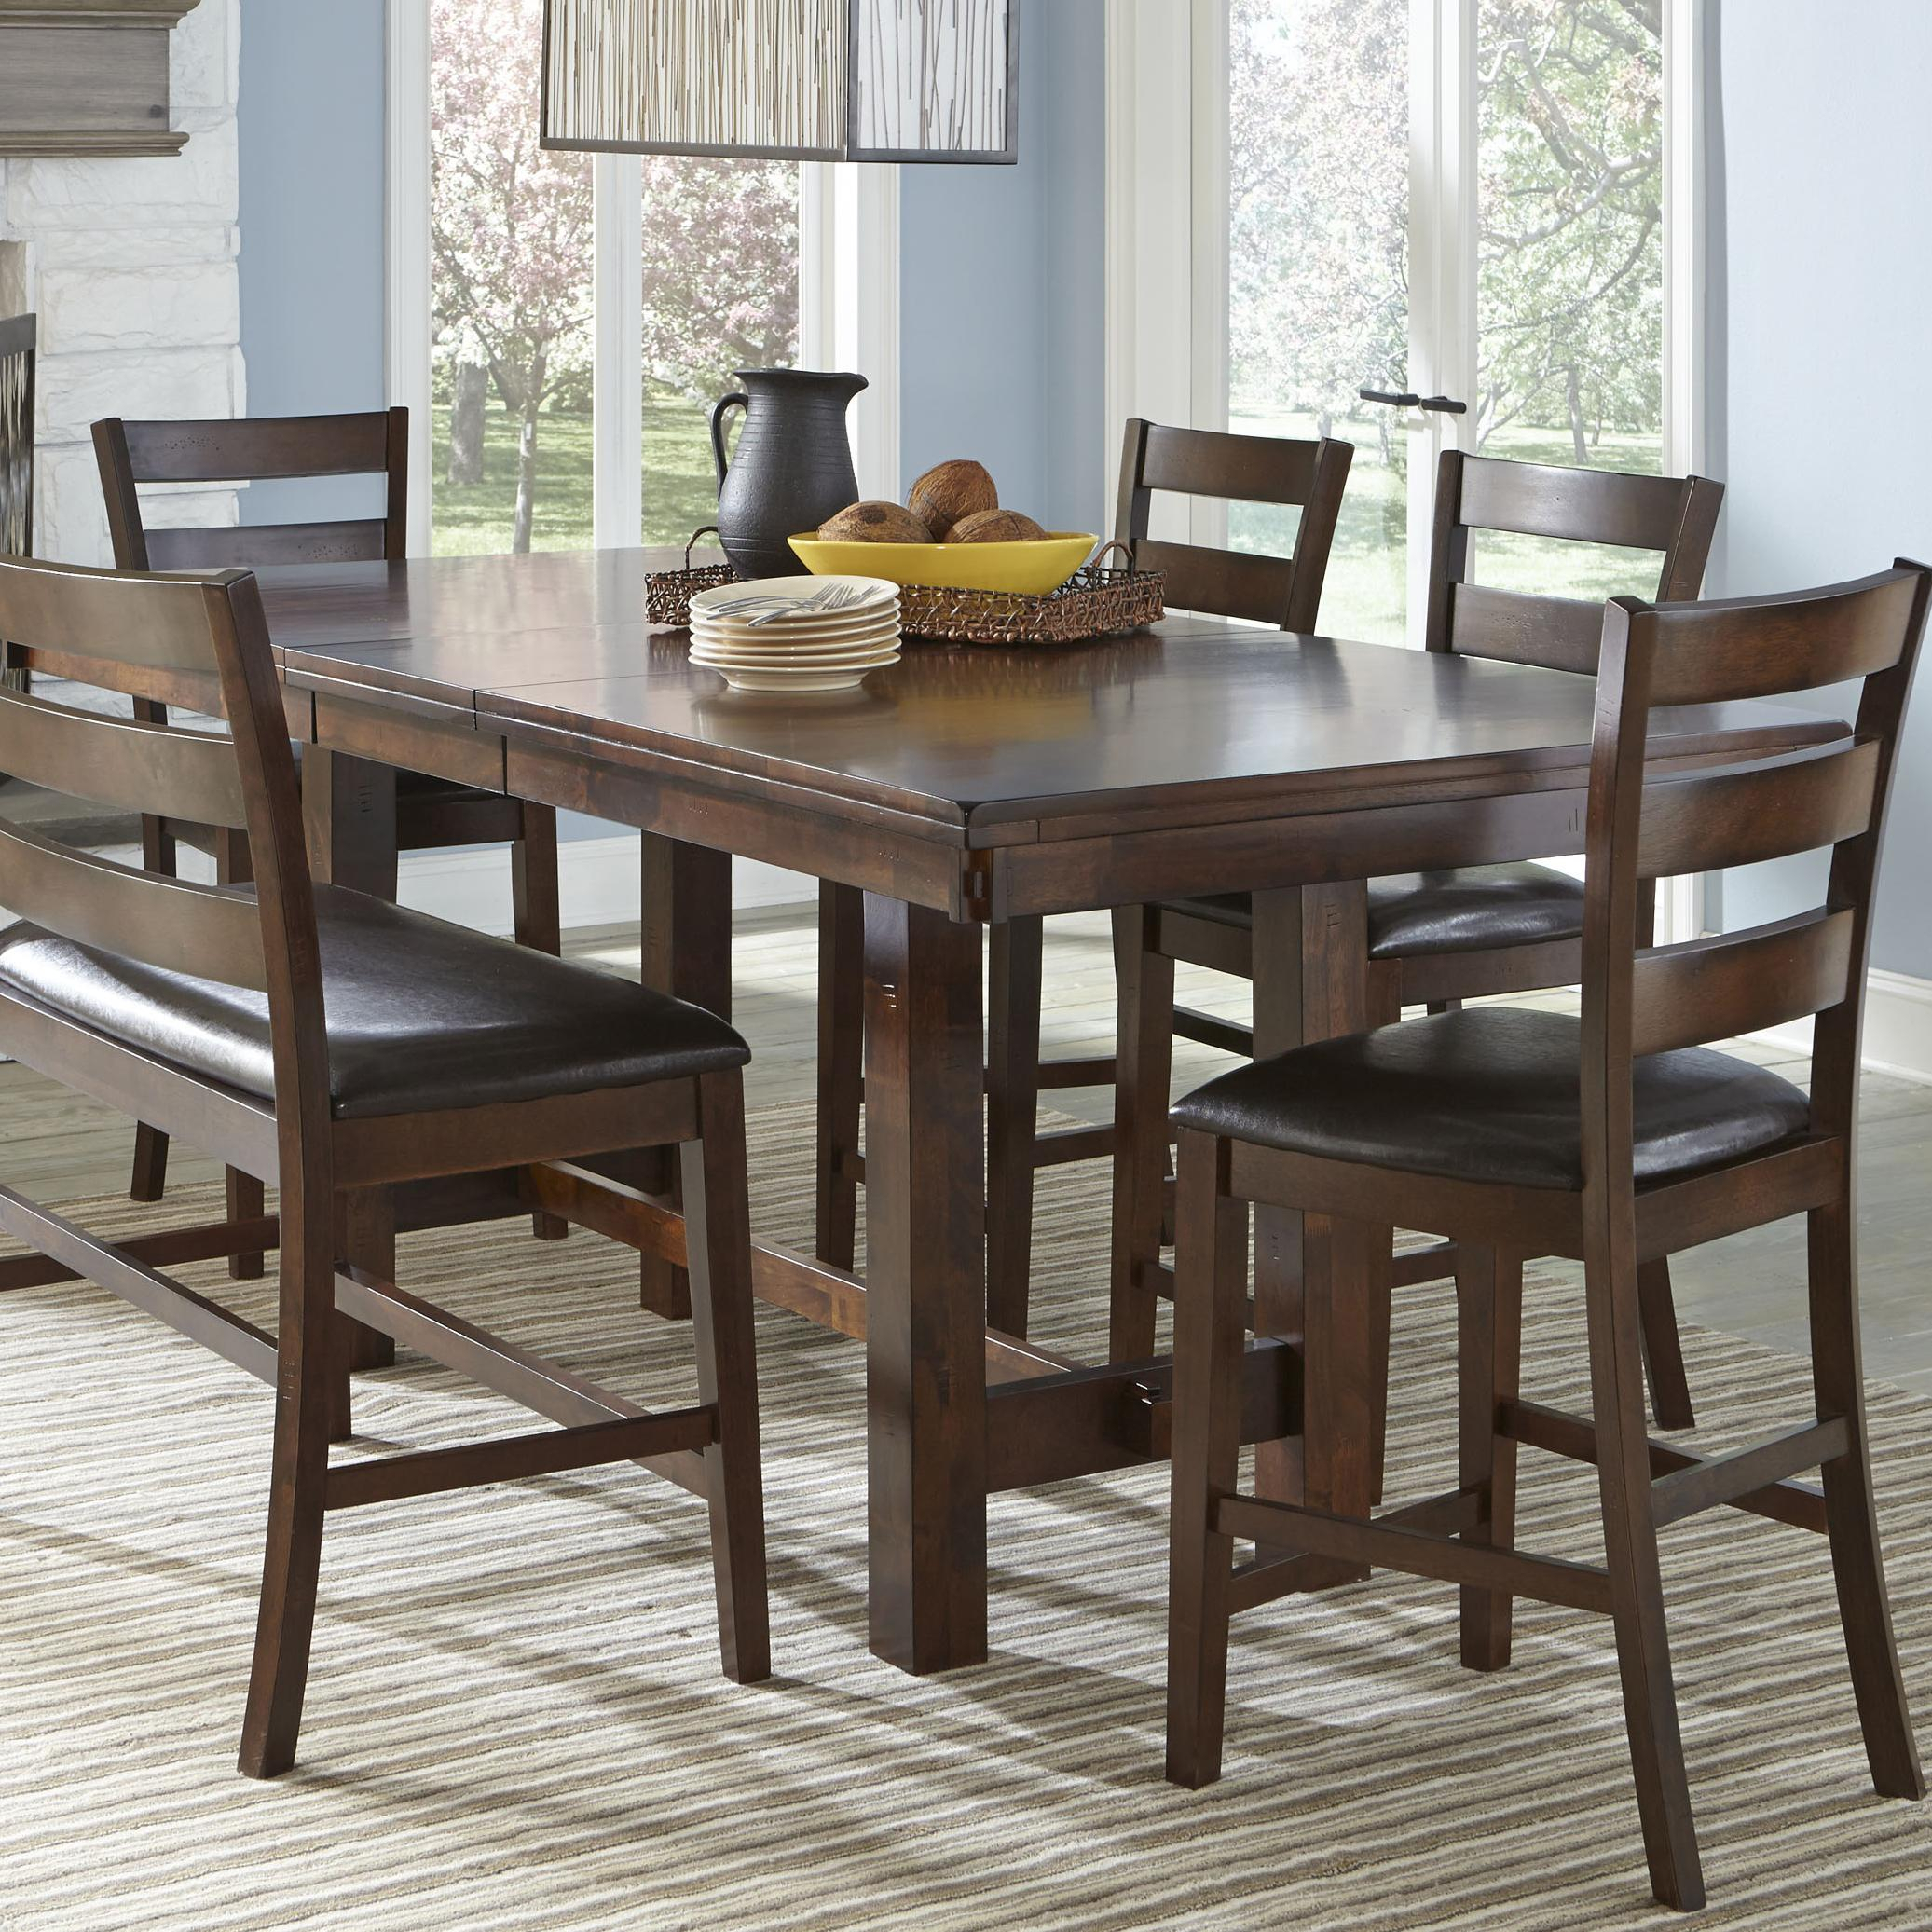 Belfort Select Cabin Creek Counter Height Table With Leaf Within Most Recently Released Pennside Counter Height Dining Tables (View 2 of 15)